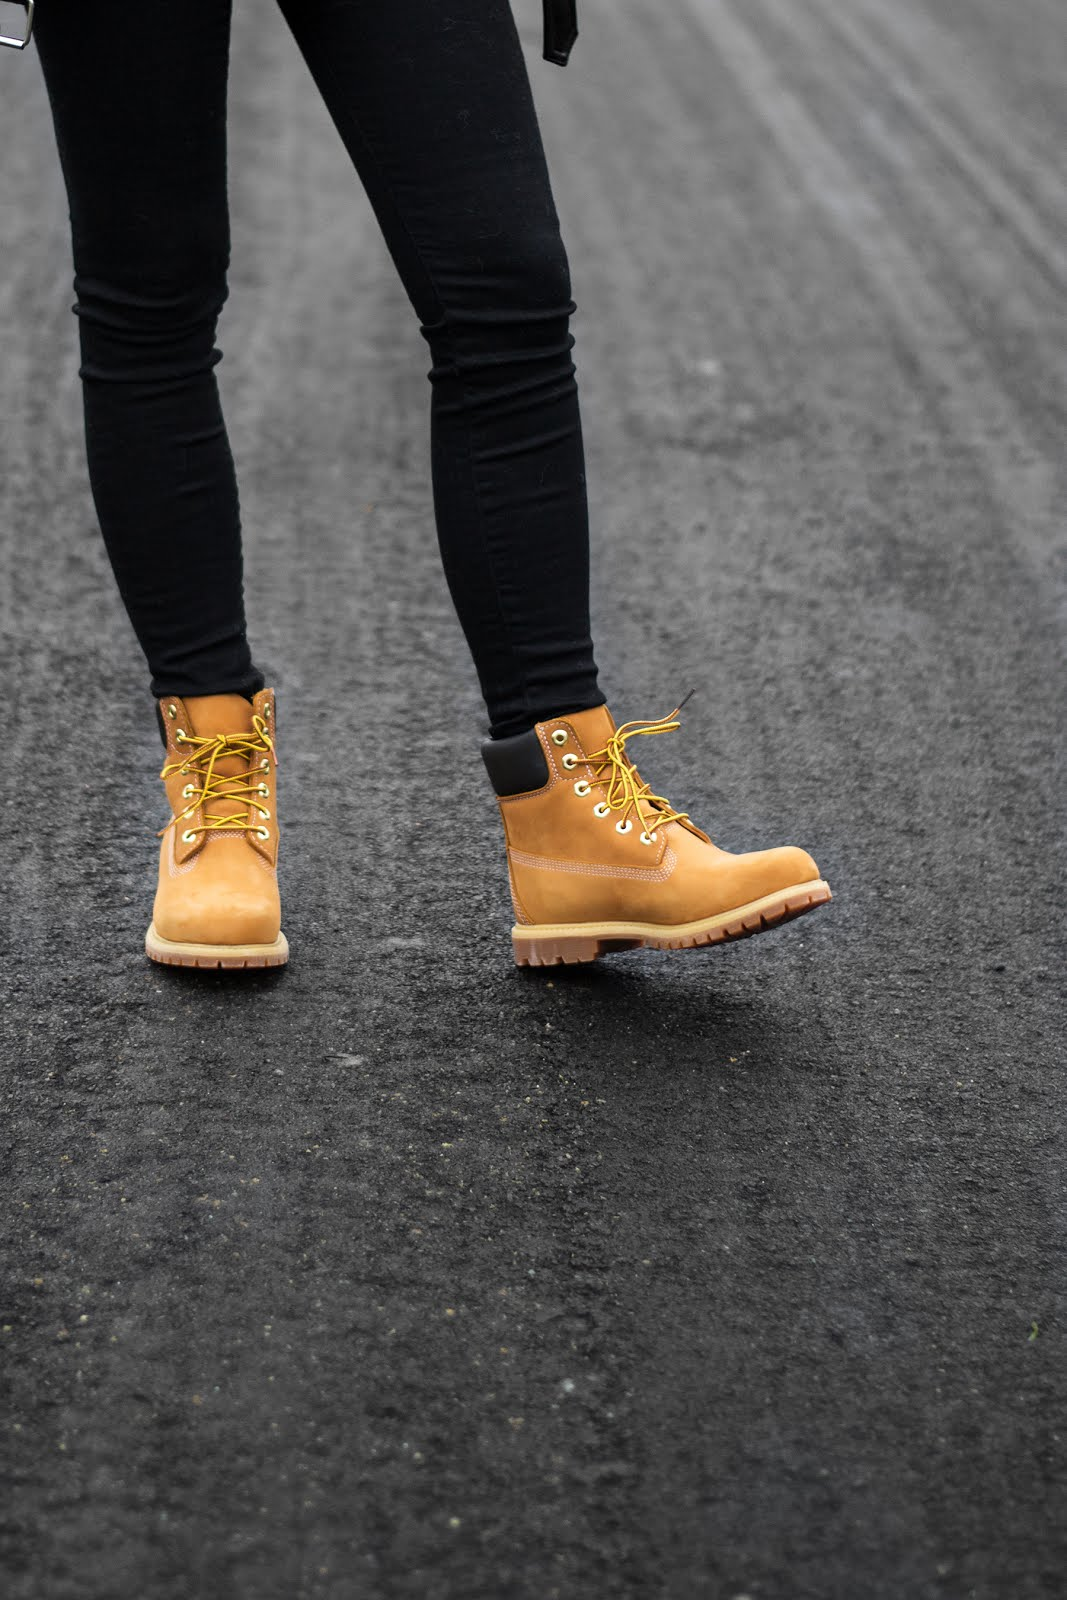 Timberland boots, wheat, premium, outfit, minimal, onlybrands, ethrias, women, street style